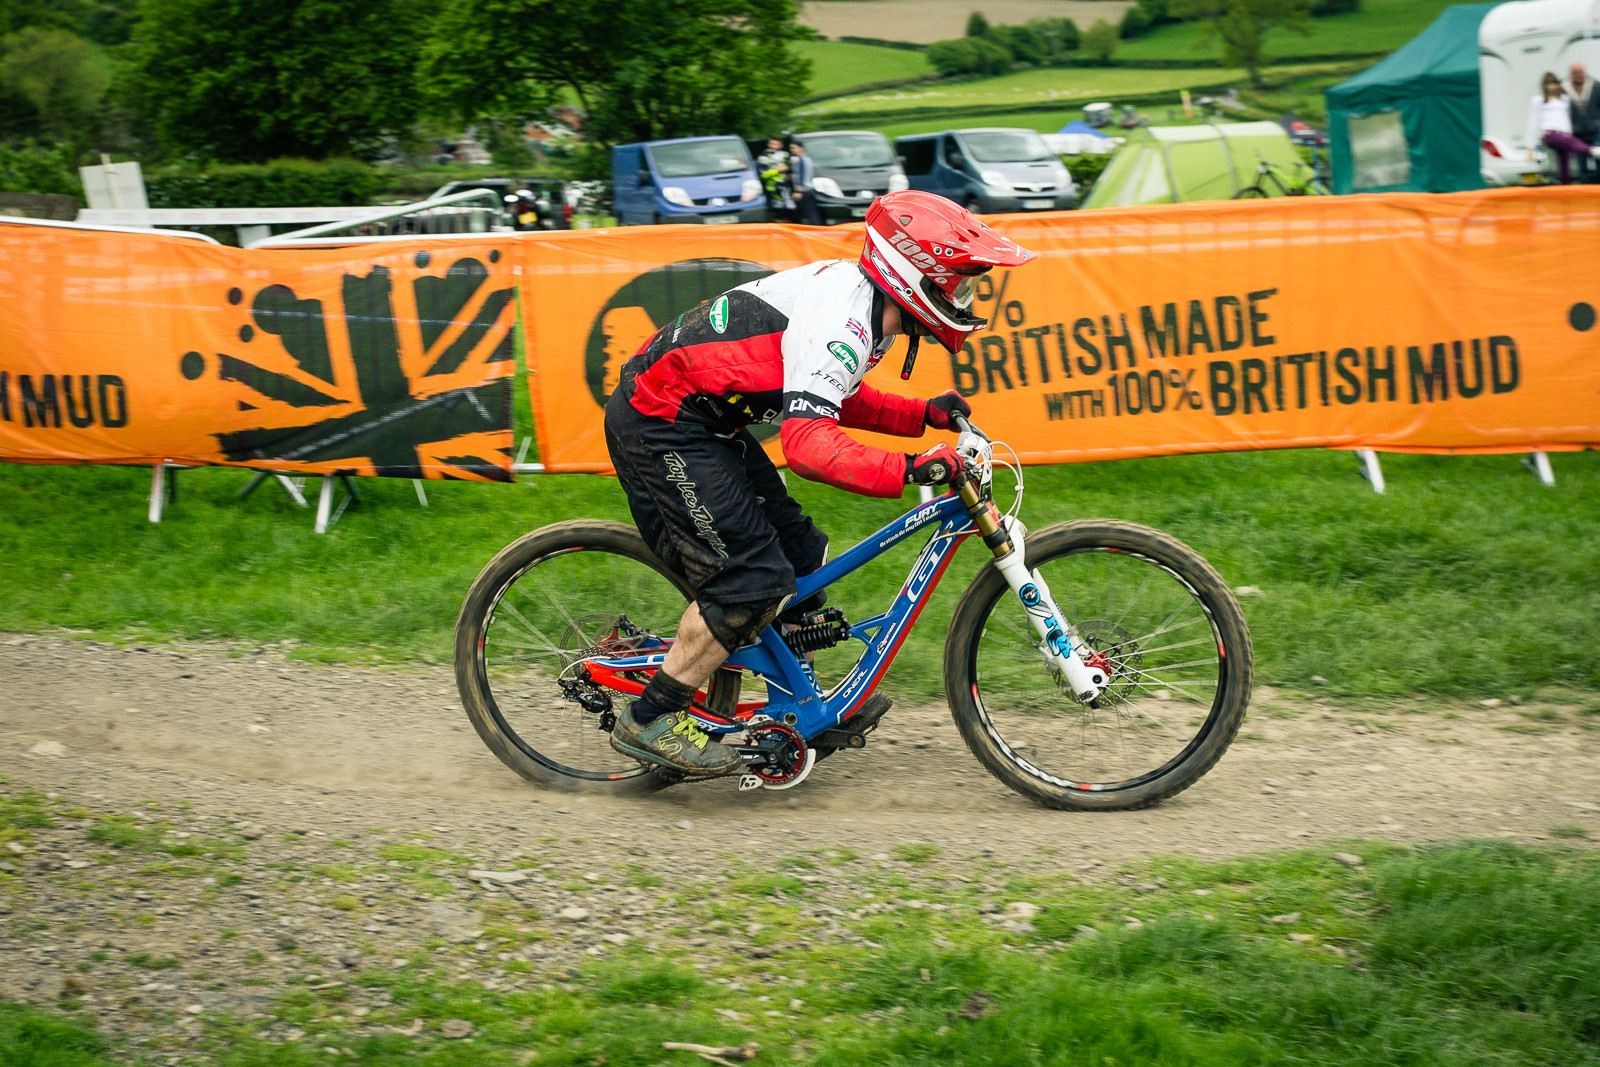 GT Fury G-ed Out at Llangollen - G-Out Project - Llangollen BDS 2015 - Mountain Biking Pictures - Vital MTB